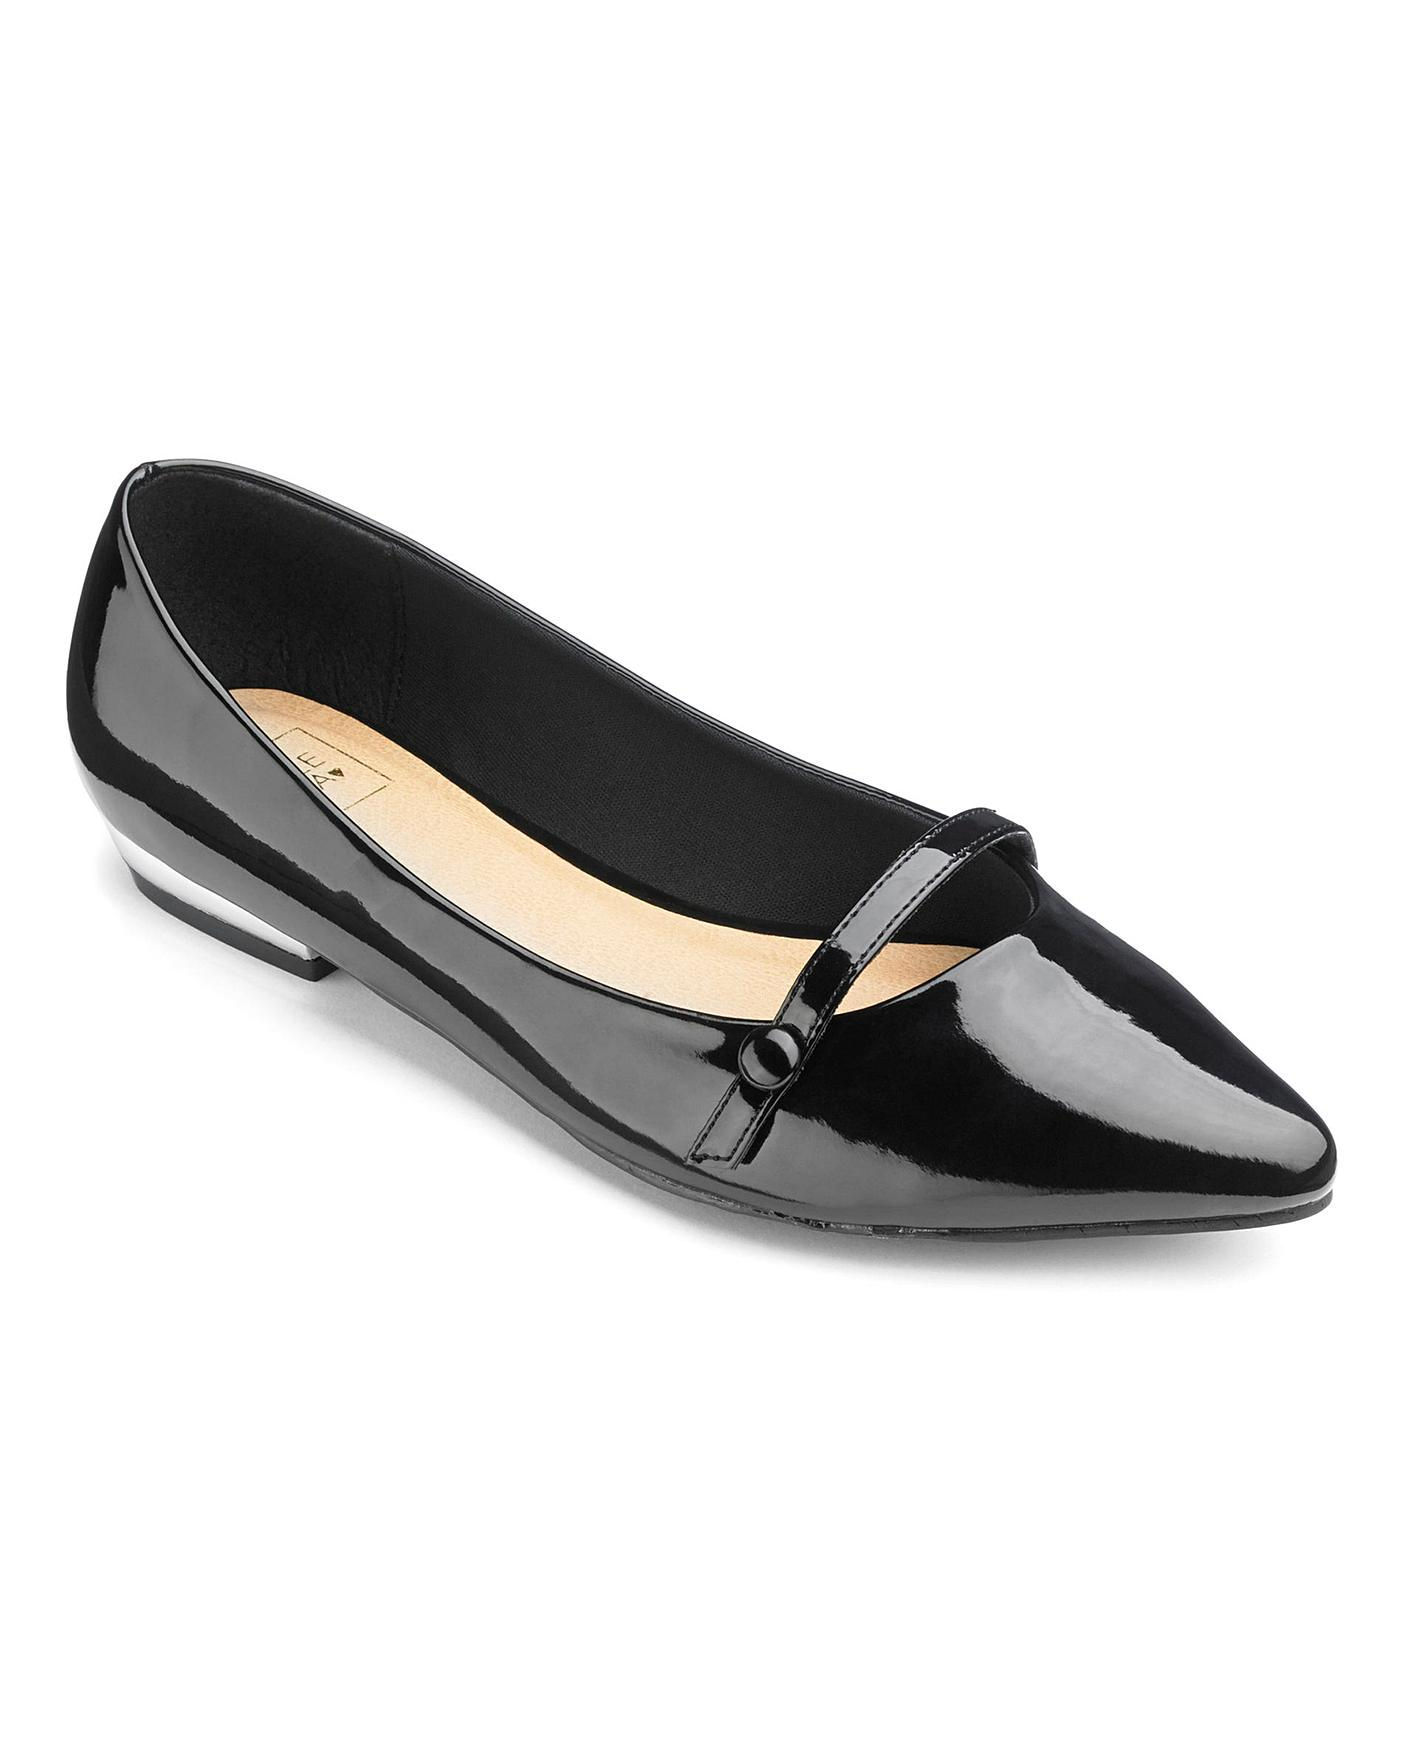 Sole Diva Mary Jane Shoes EEE Fit